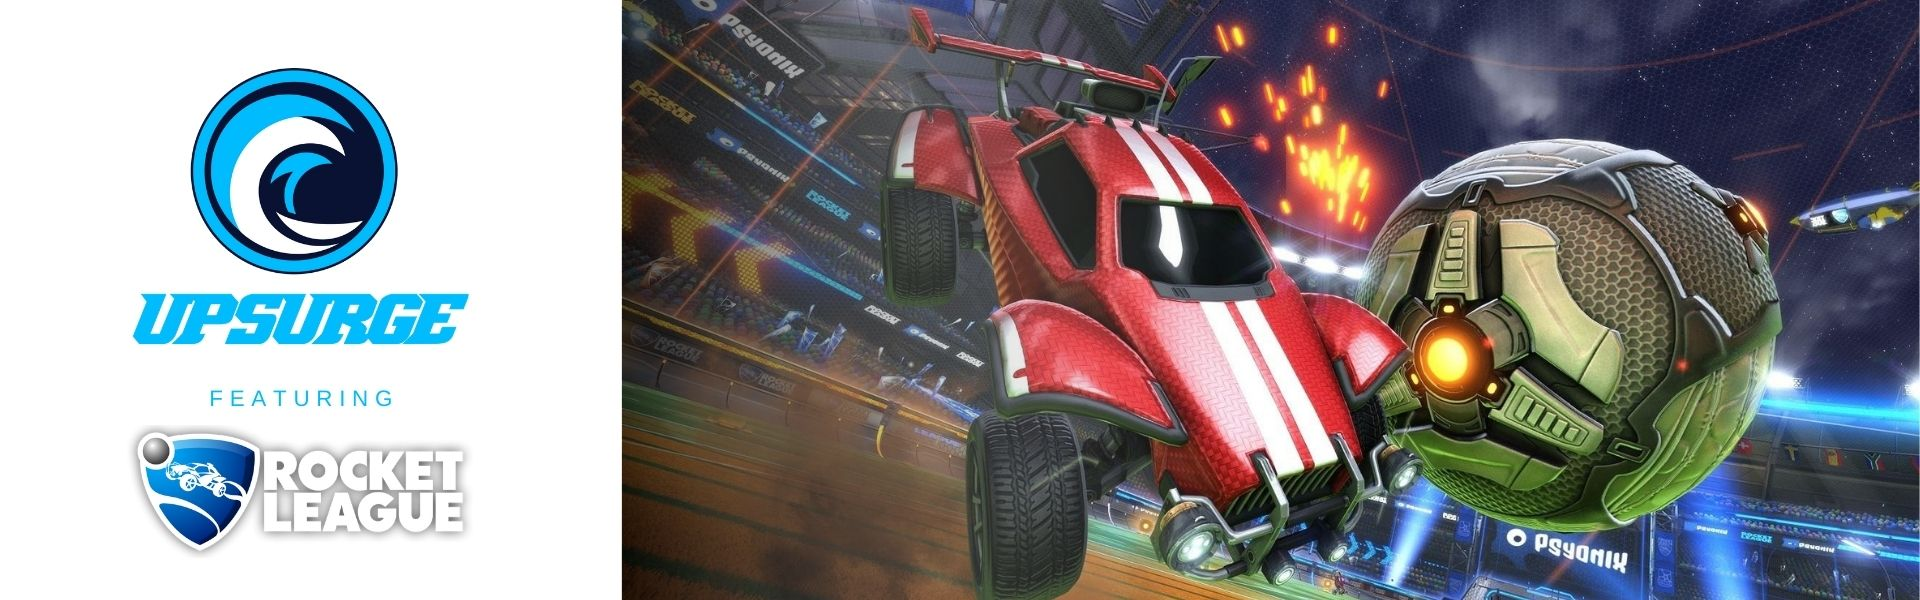 Upsurge Premier League - Rocket League - Winter 2021